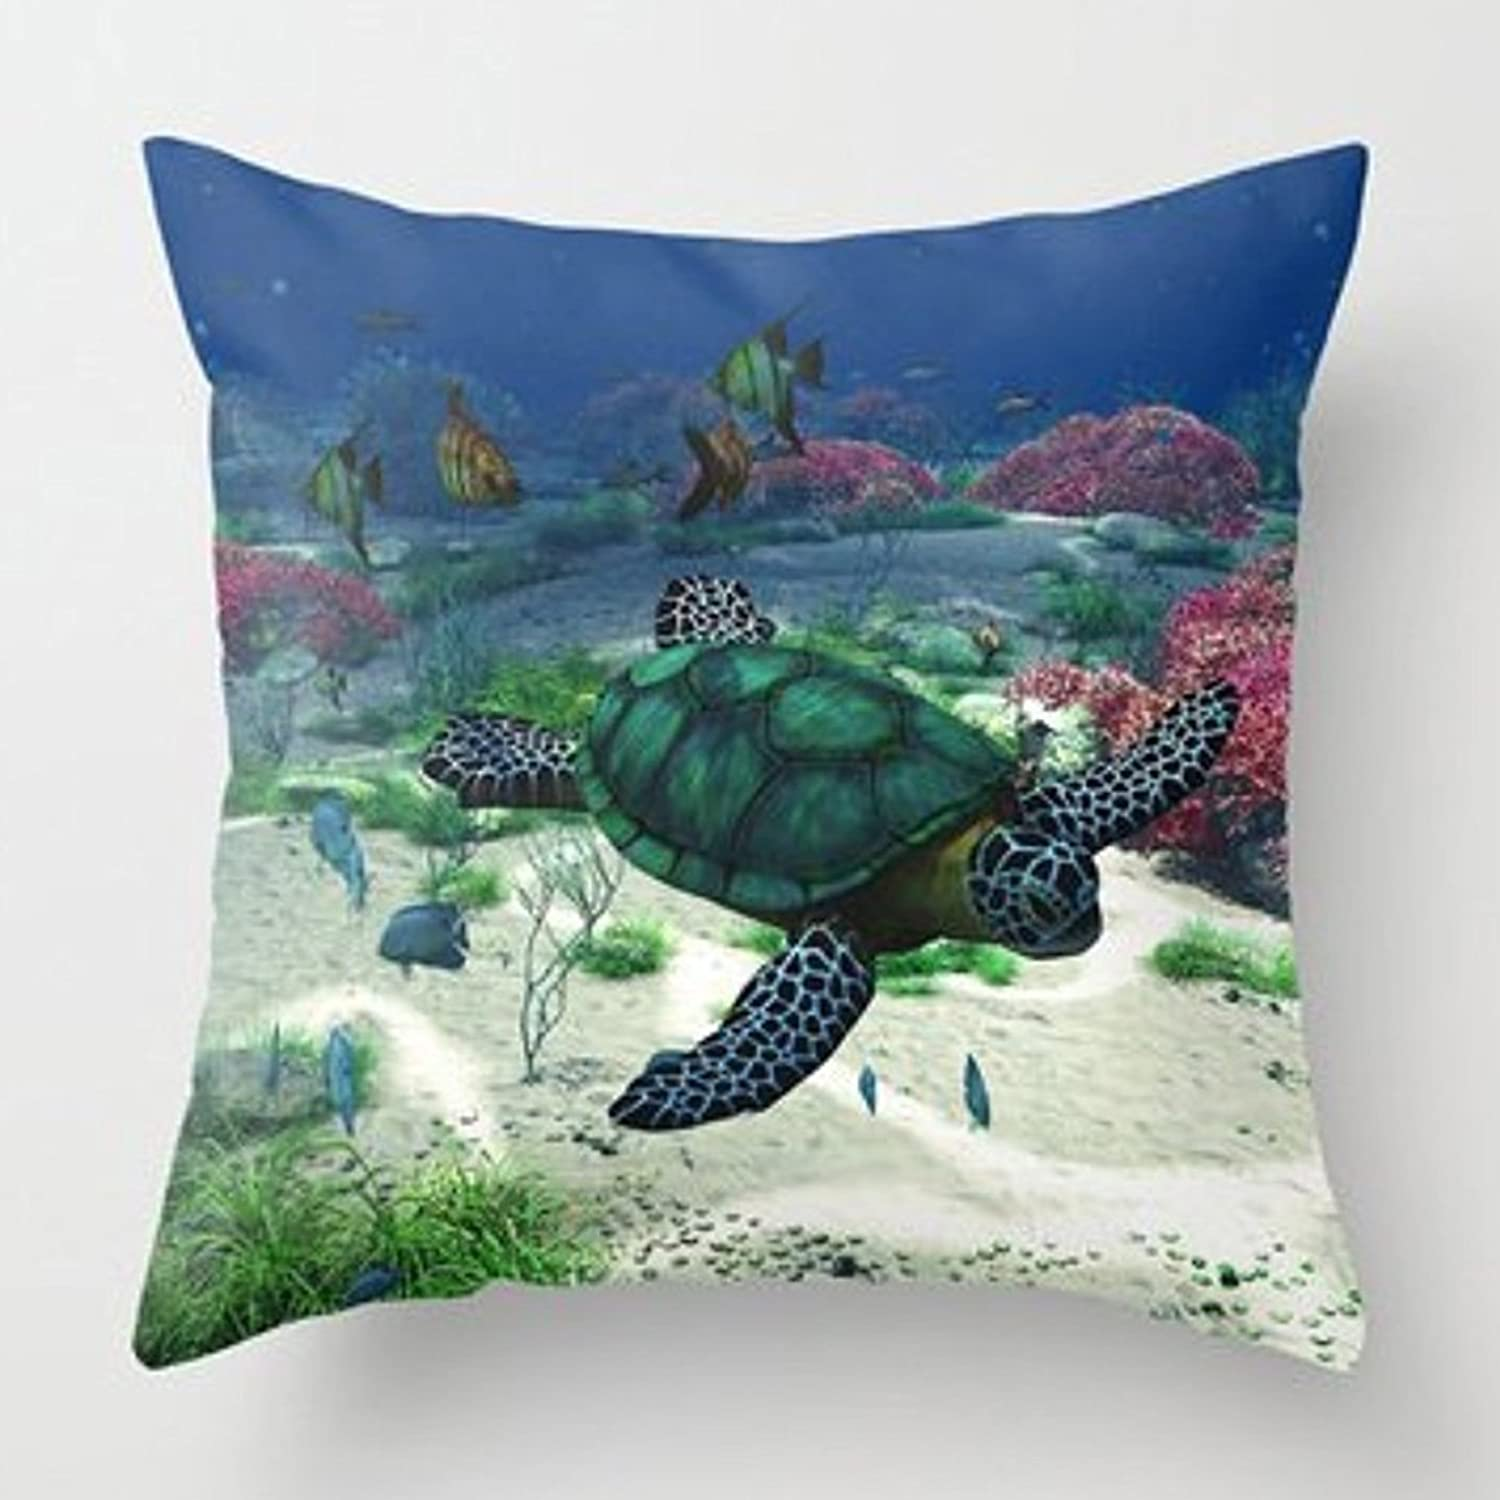 Aremazing Summer Ocean Theme Marine Life Super Soft Throw Pillow Case Cushion Cover Home Office Decorative 18 X 18 Inches (Sea Turtle)